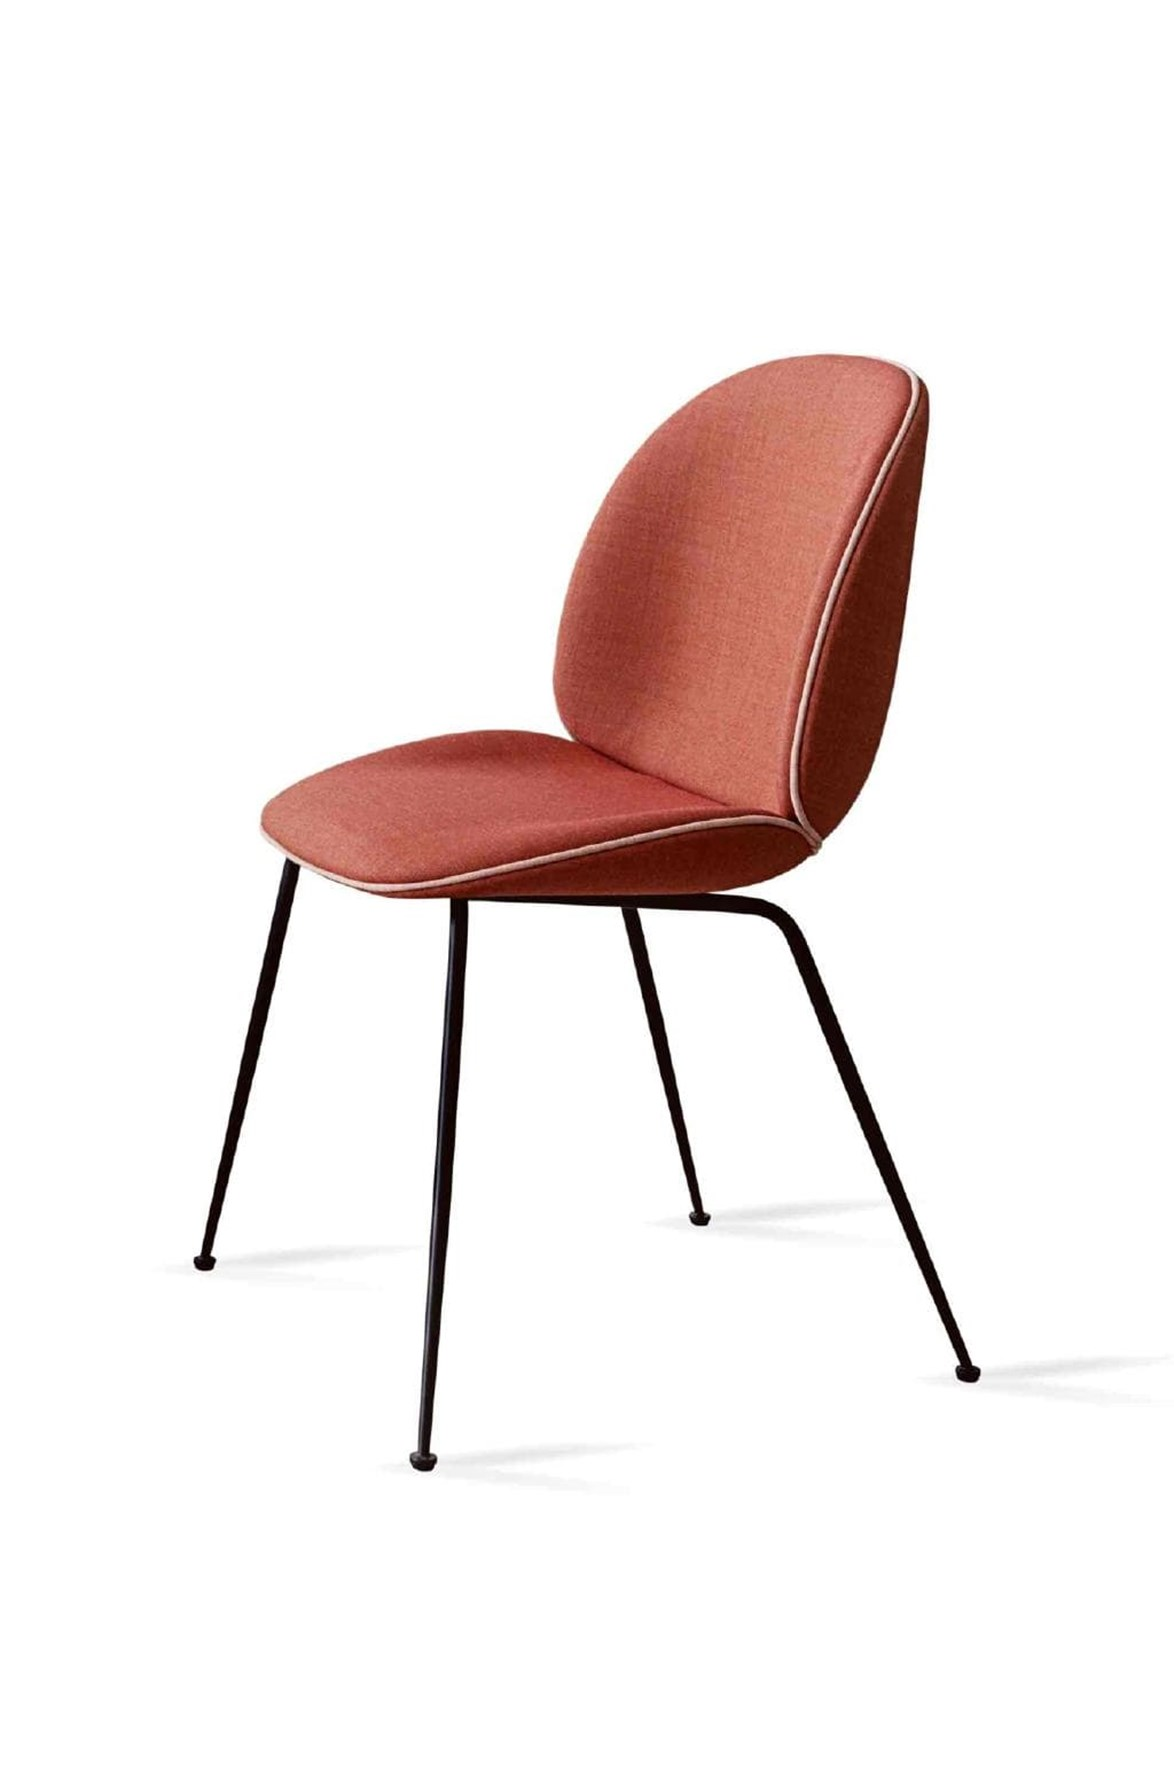 "Gubi 'Beetle' chair from $1389, [Cult](https://cultdesign.com.au/shop/beetle-chair|target=""_blank""